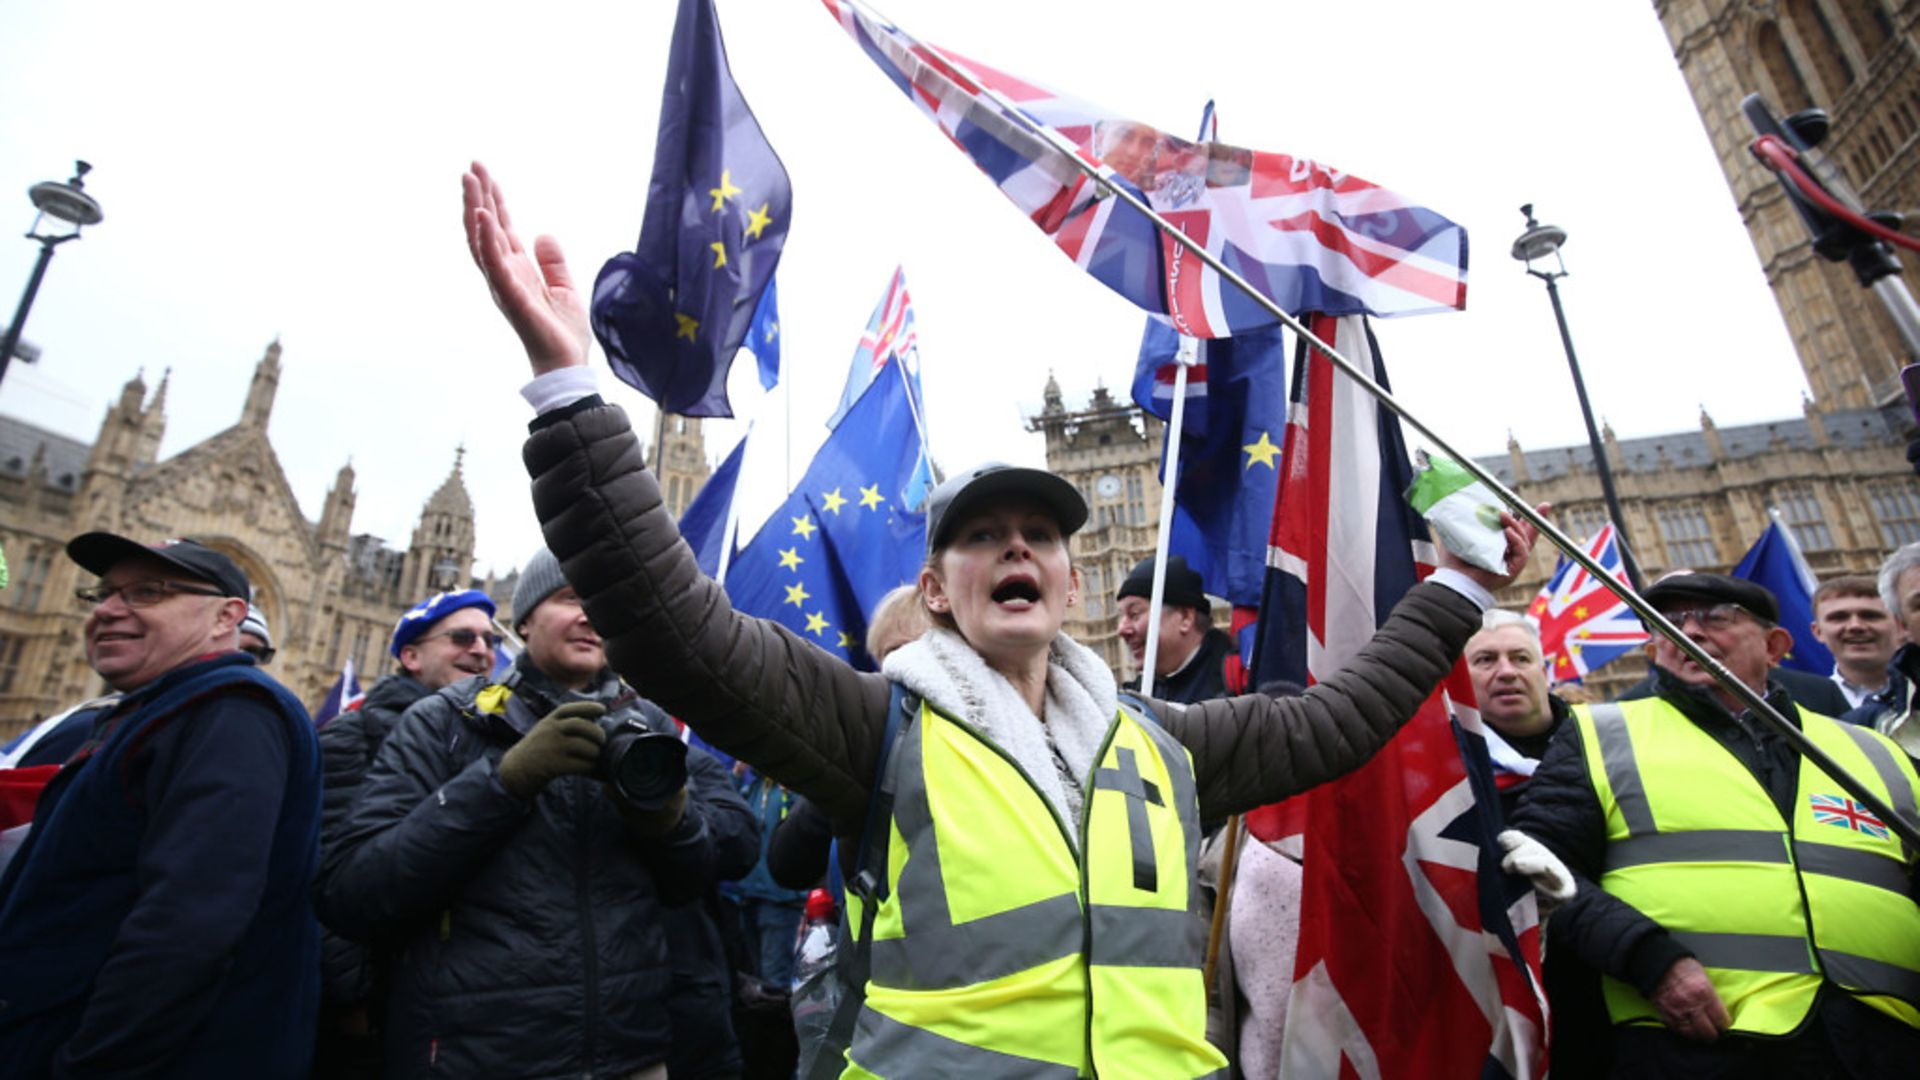 Pro Brexit supporters outside the Houses of Parliament, London - Credit: Yui Mok/PA Wire